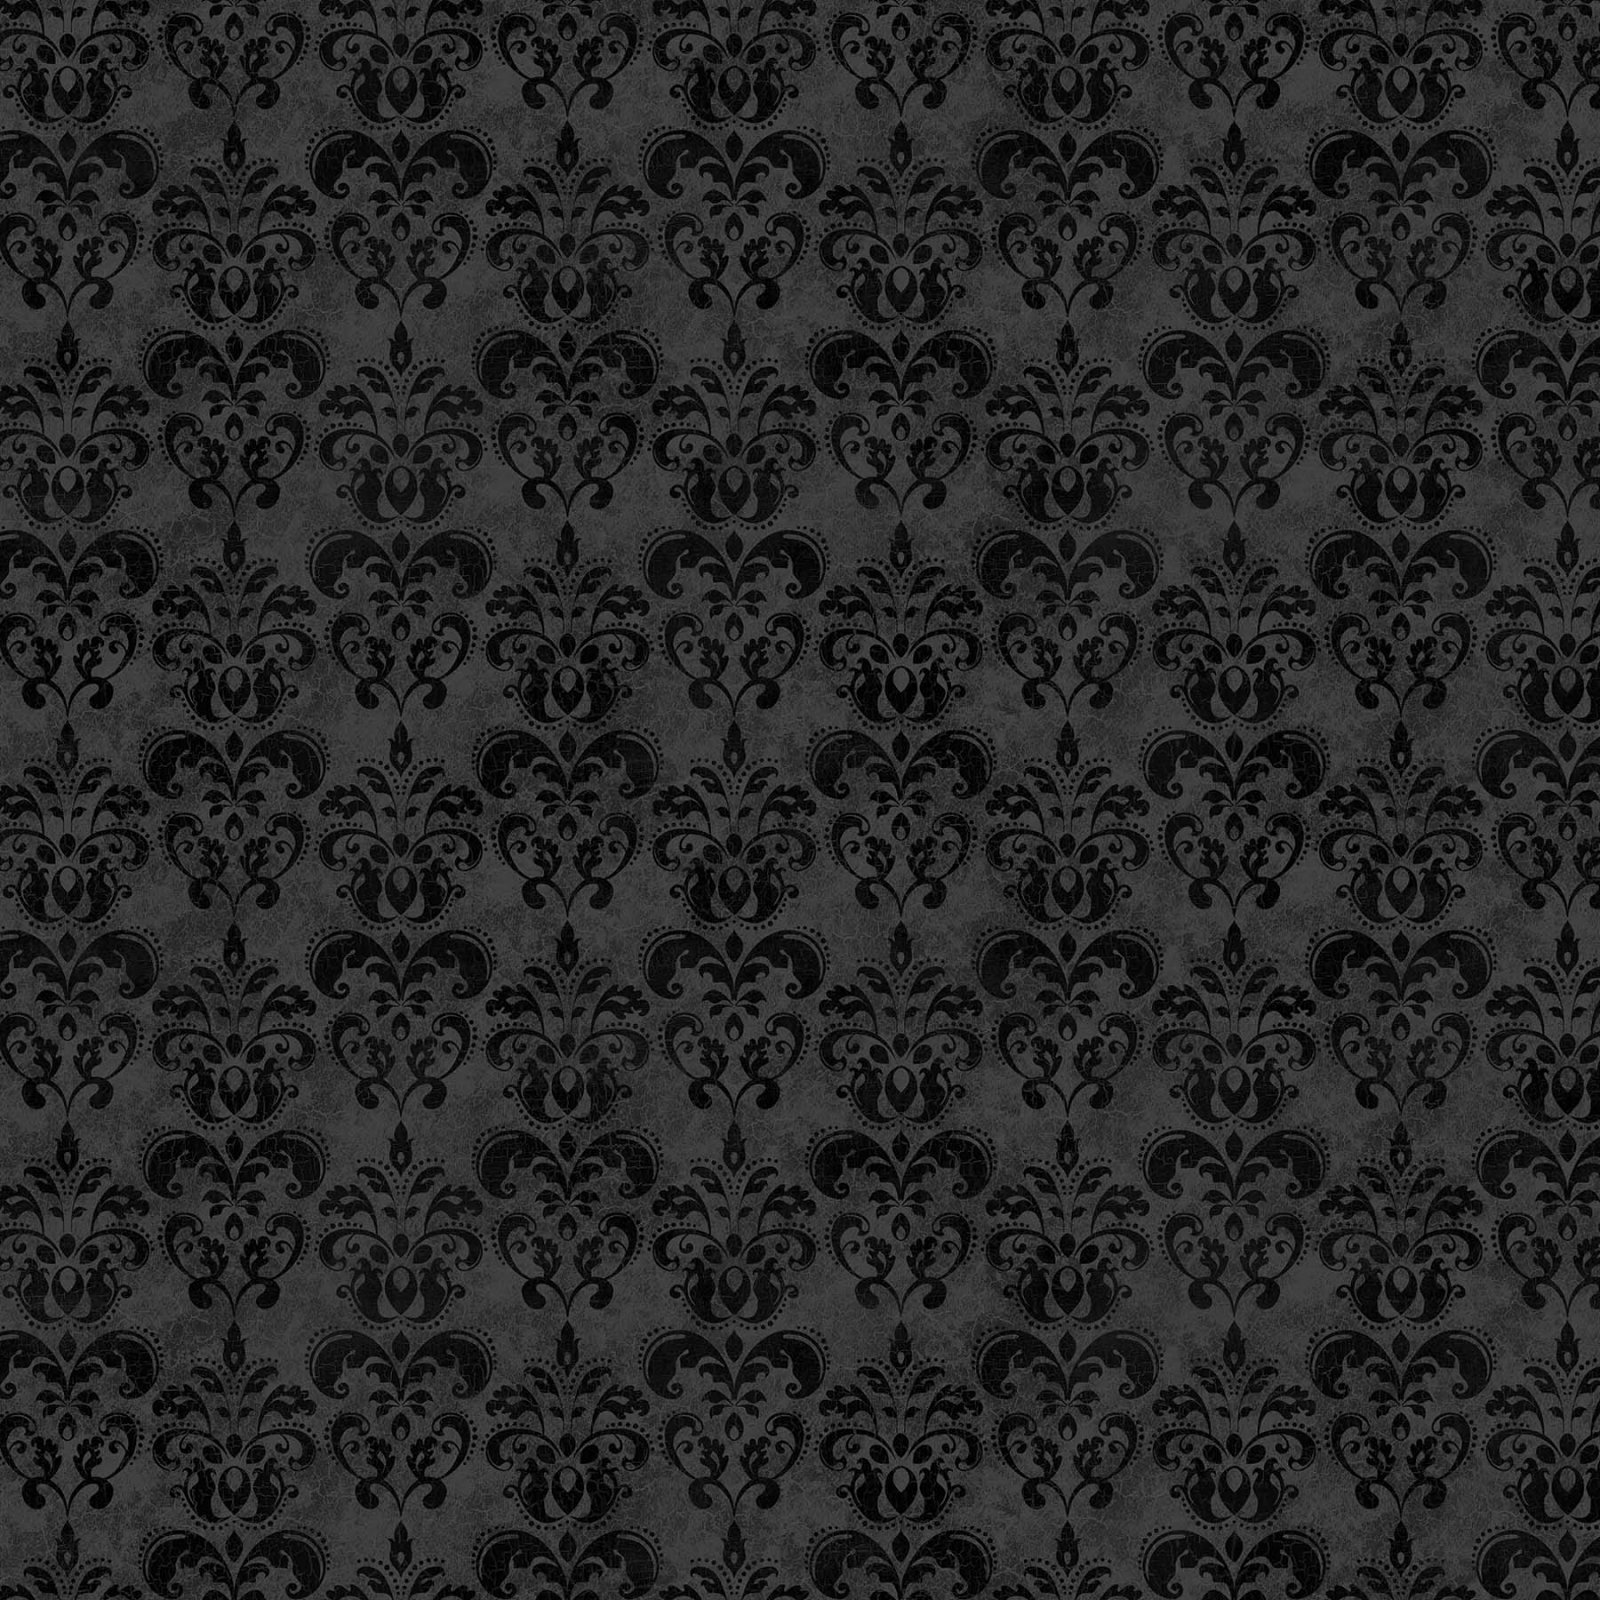 Black Cat Capers - Damask